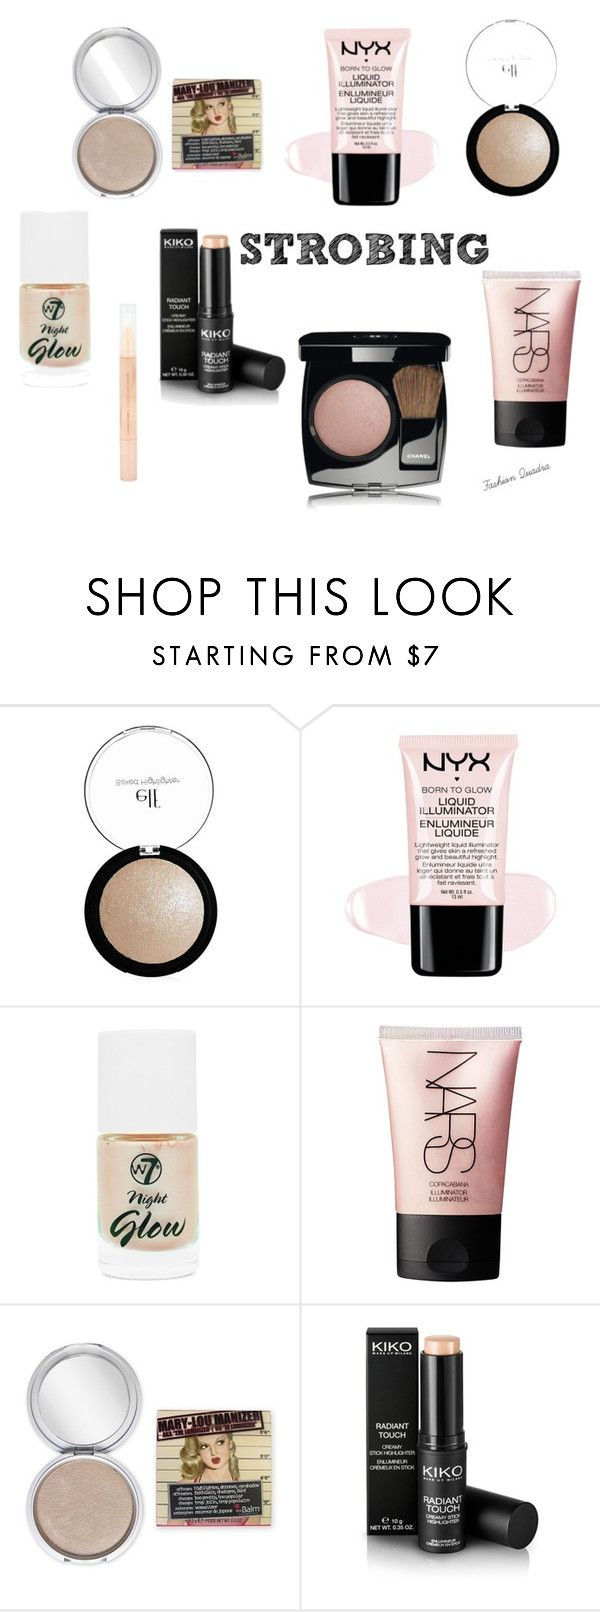 """STROBING"" by fashionquadra on Polyvore featuring beauté, Lumière, Sunbeam et NARS Cosmetics"